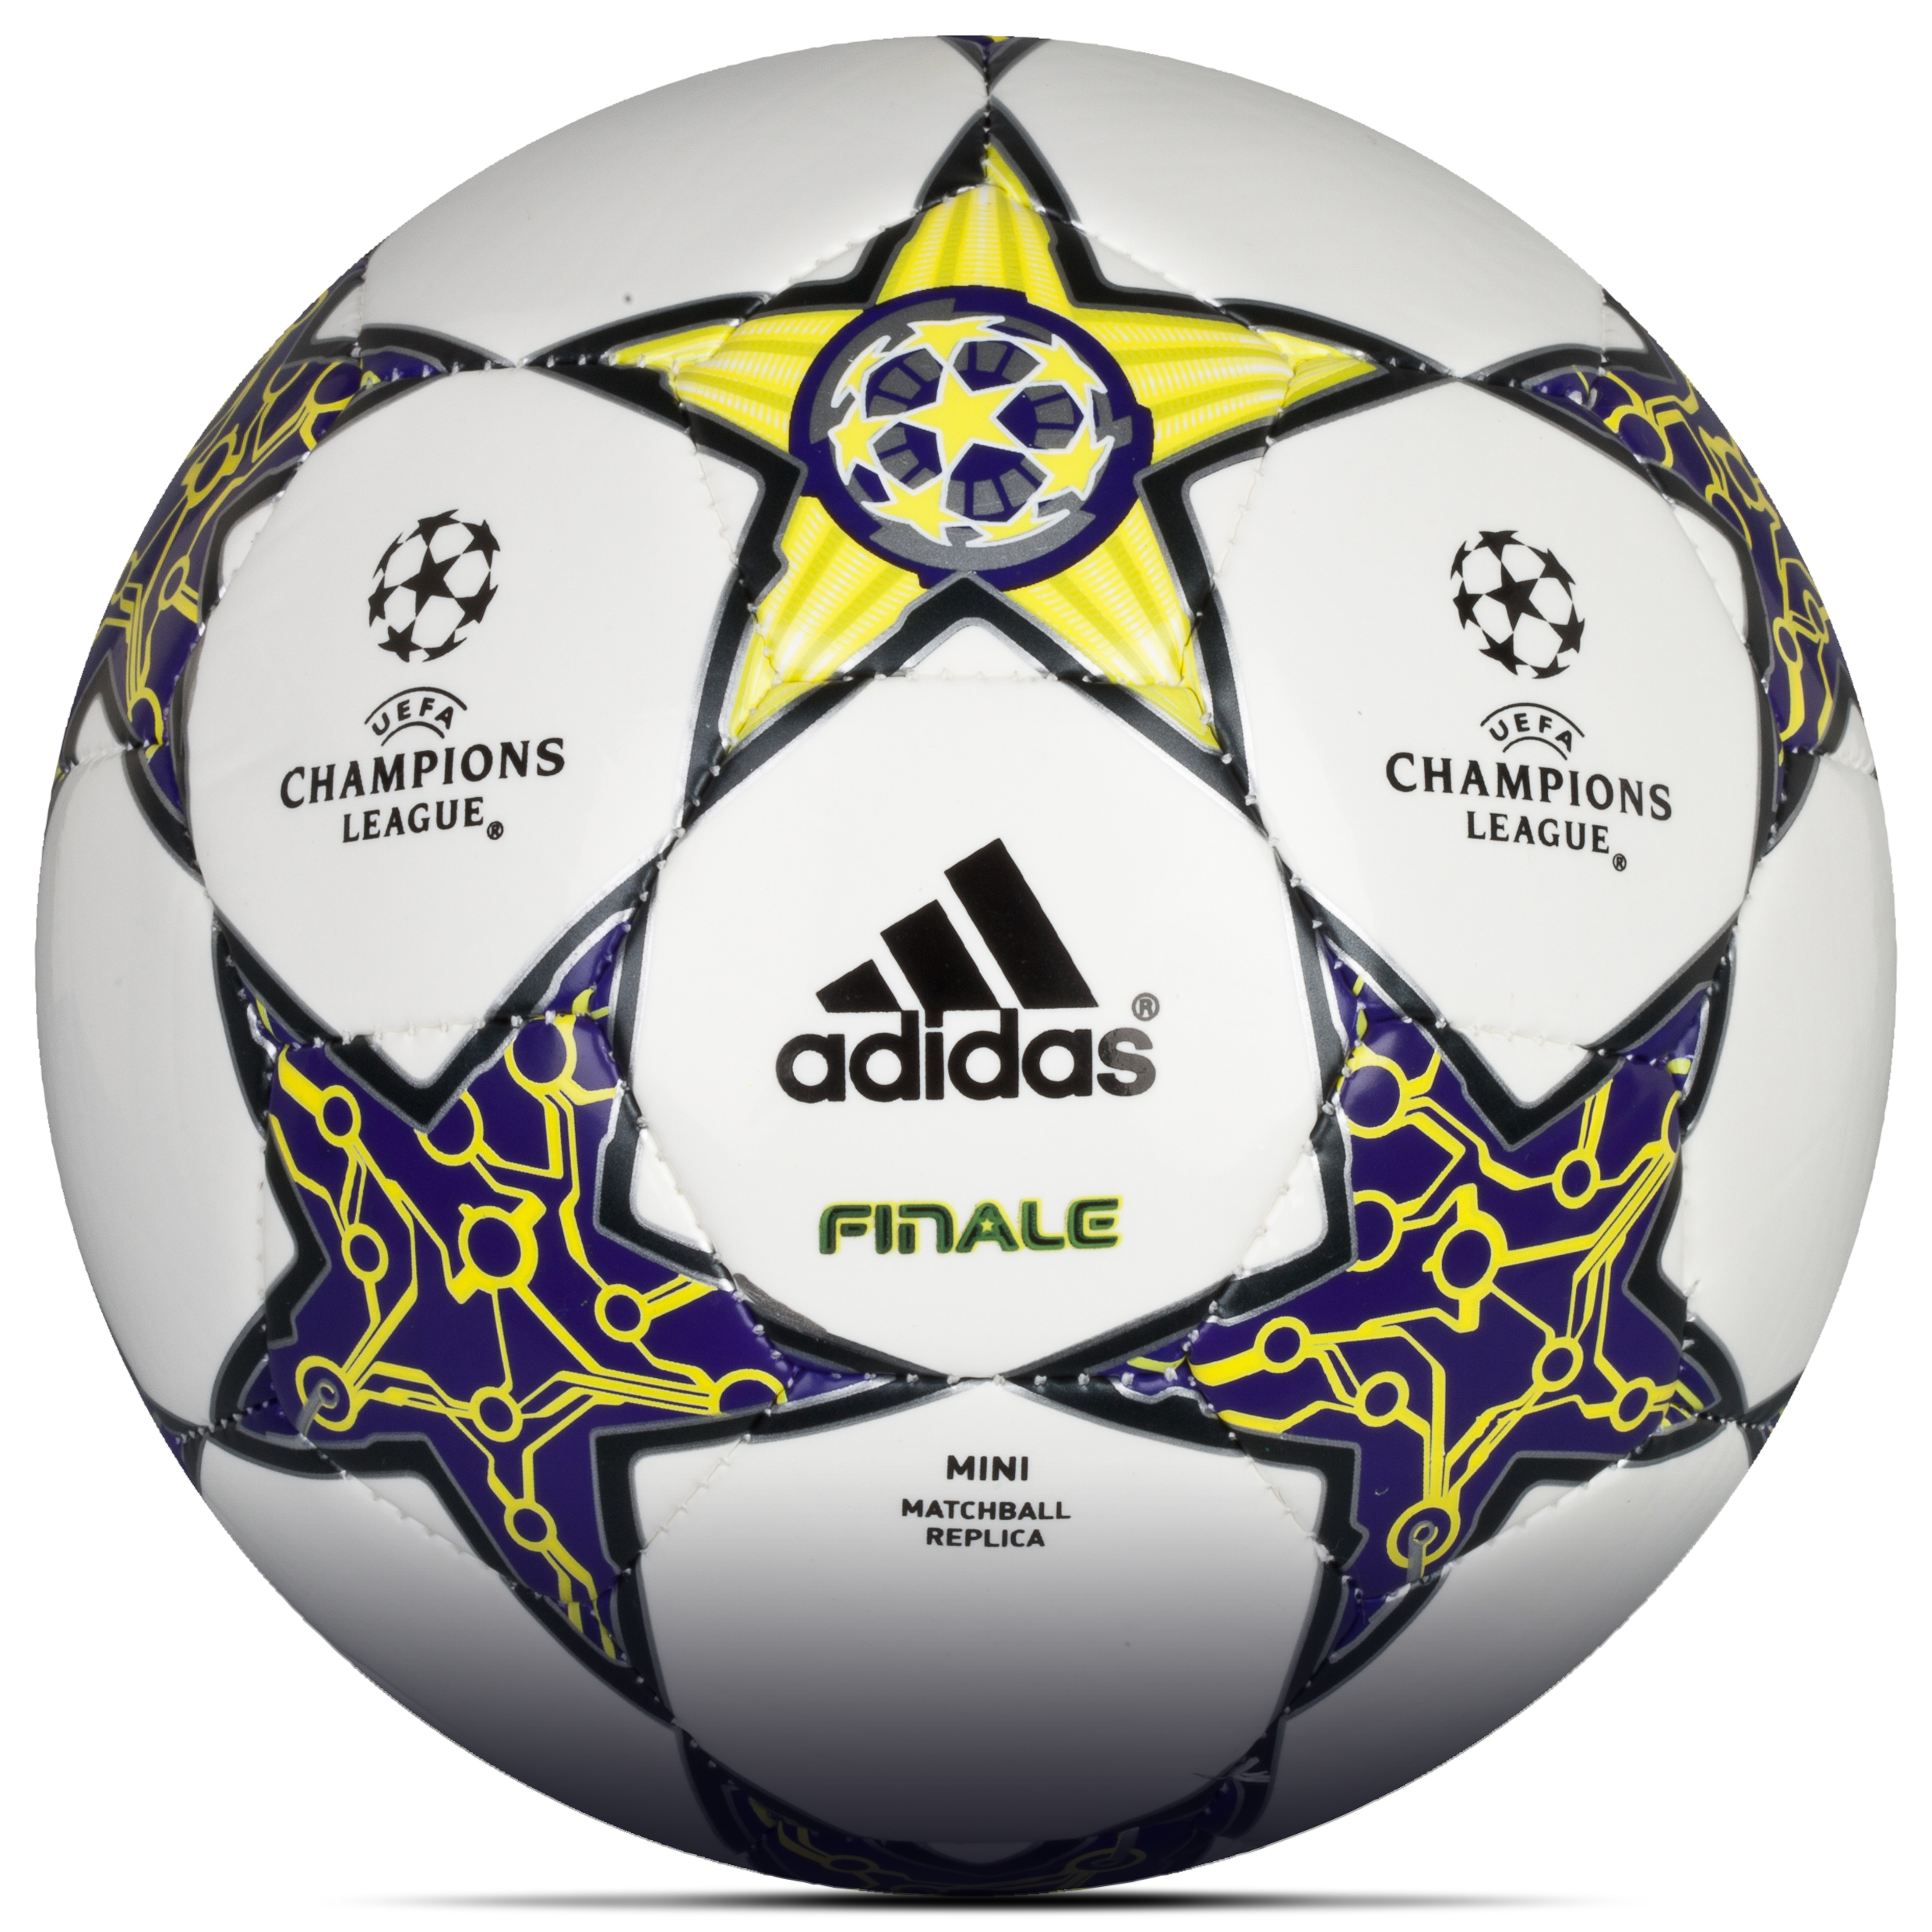 Adidas UEFA Champions League 2012 Finale Mini Football - White/Lab Lime/Dark Violet